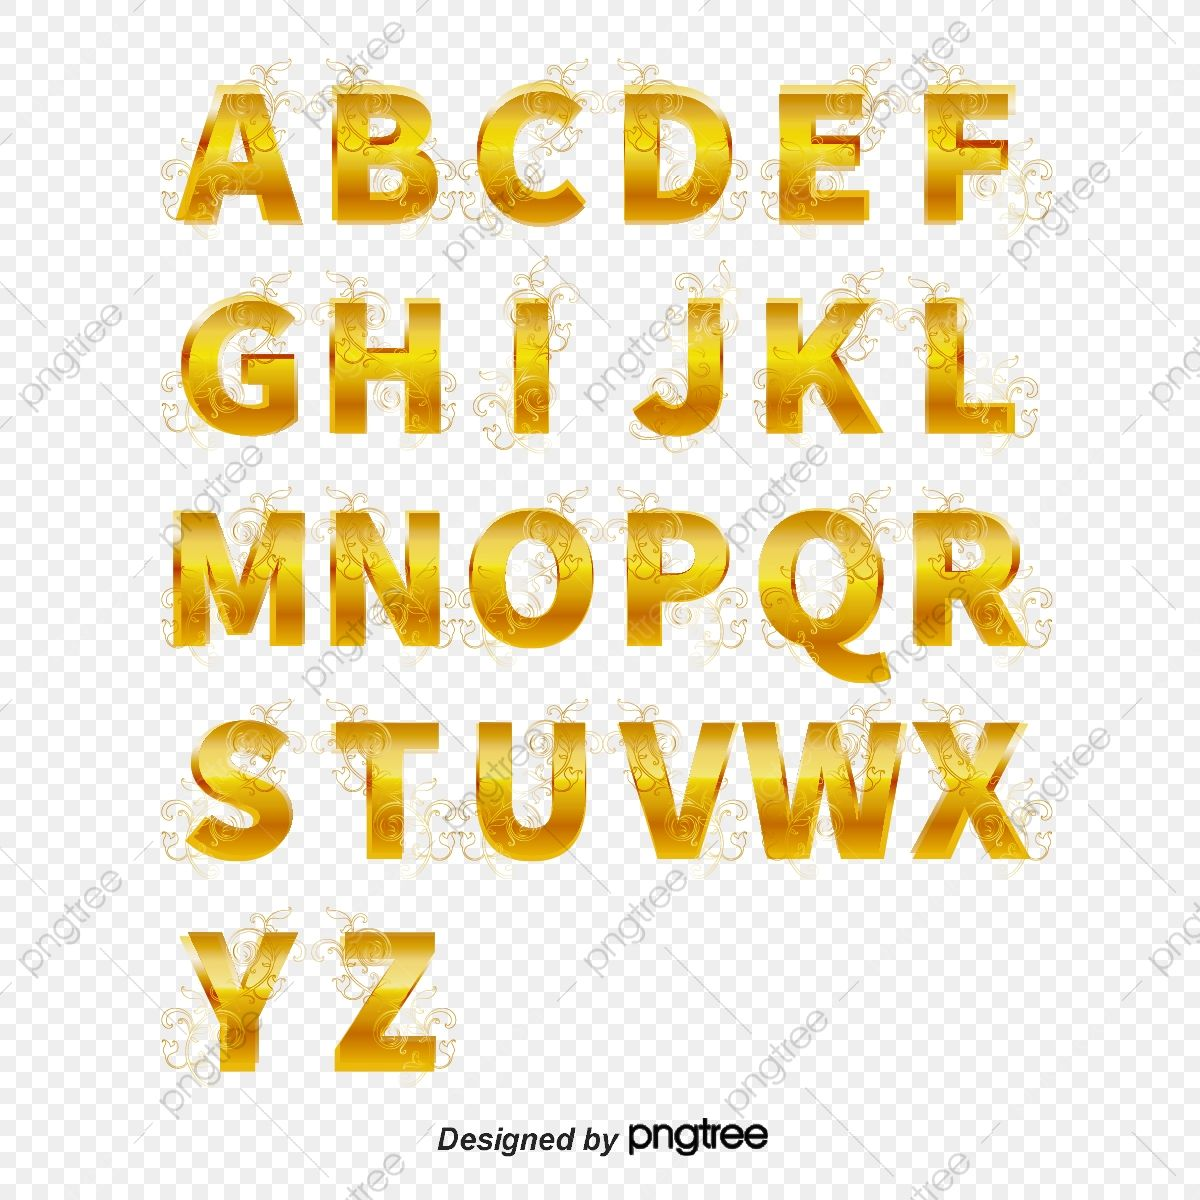 Gold Letters Effect Golden Letter Golden Effect Png And Vector With Transparent Background For Free Download Gold Letters Lettering Letters